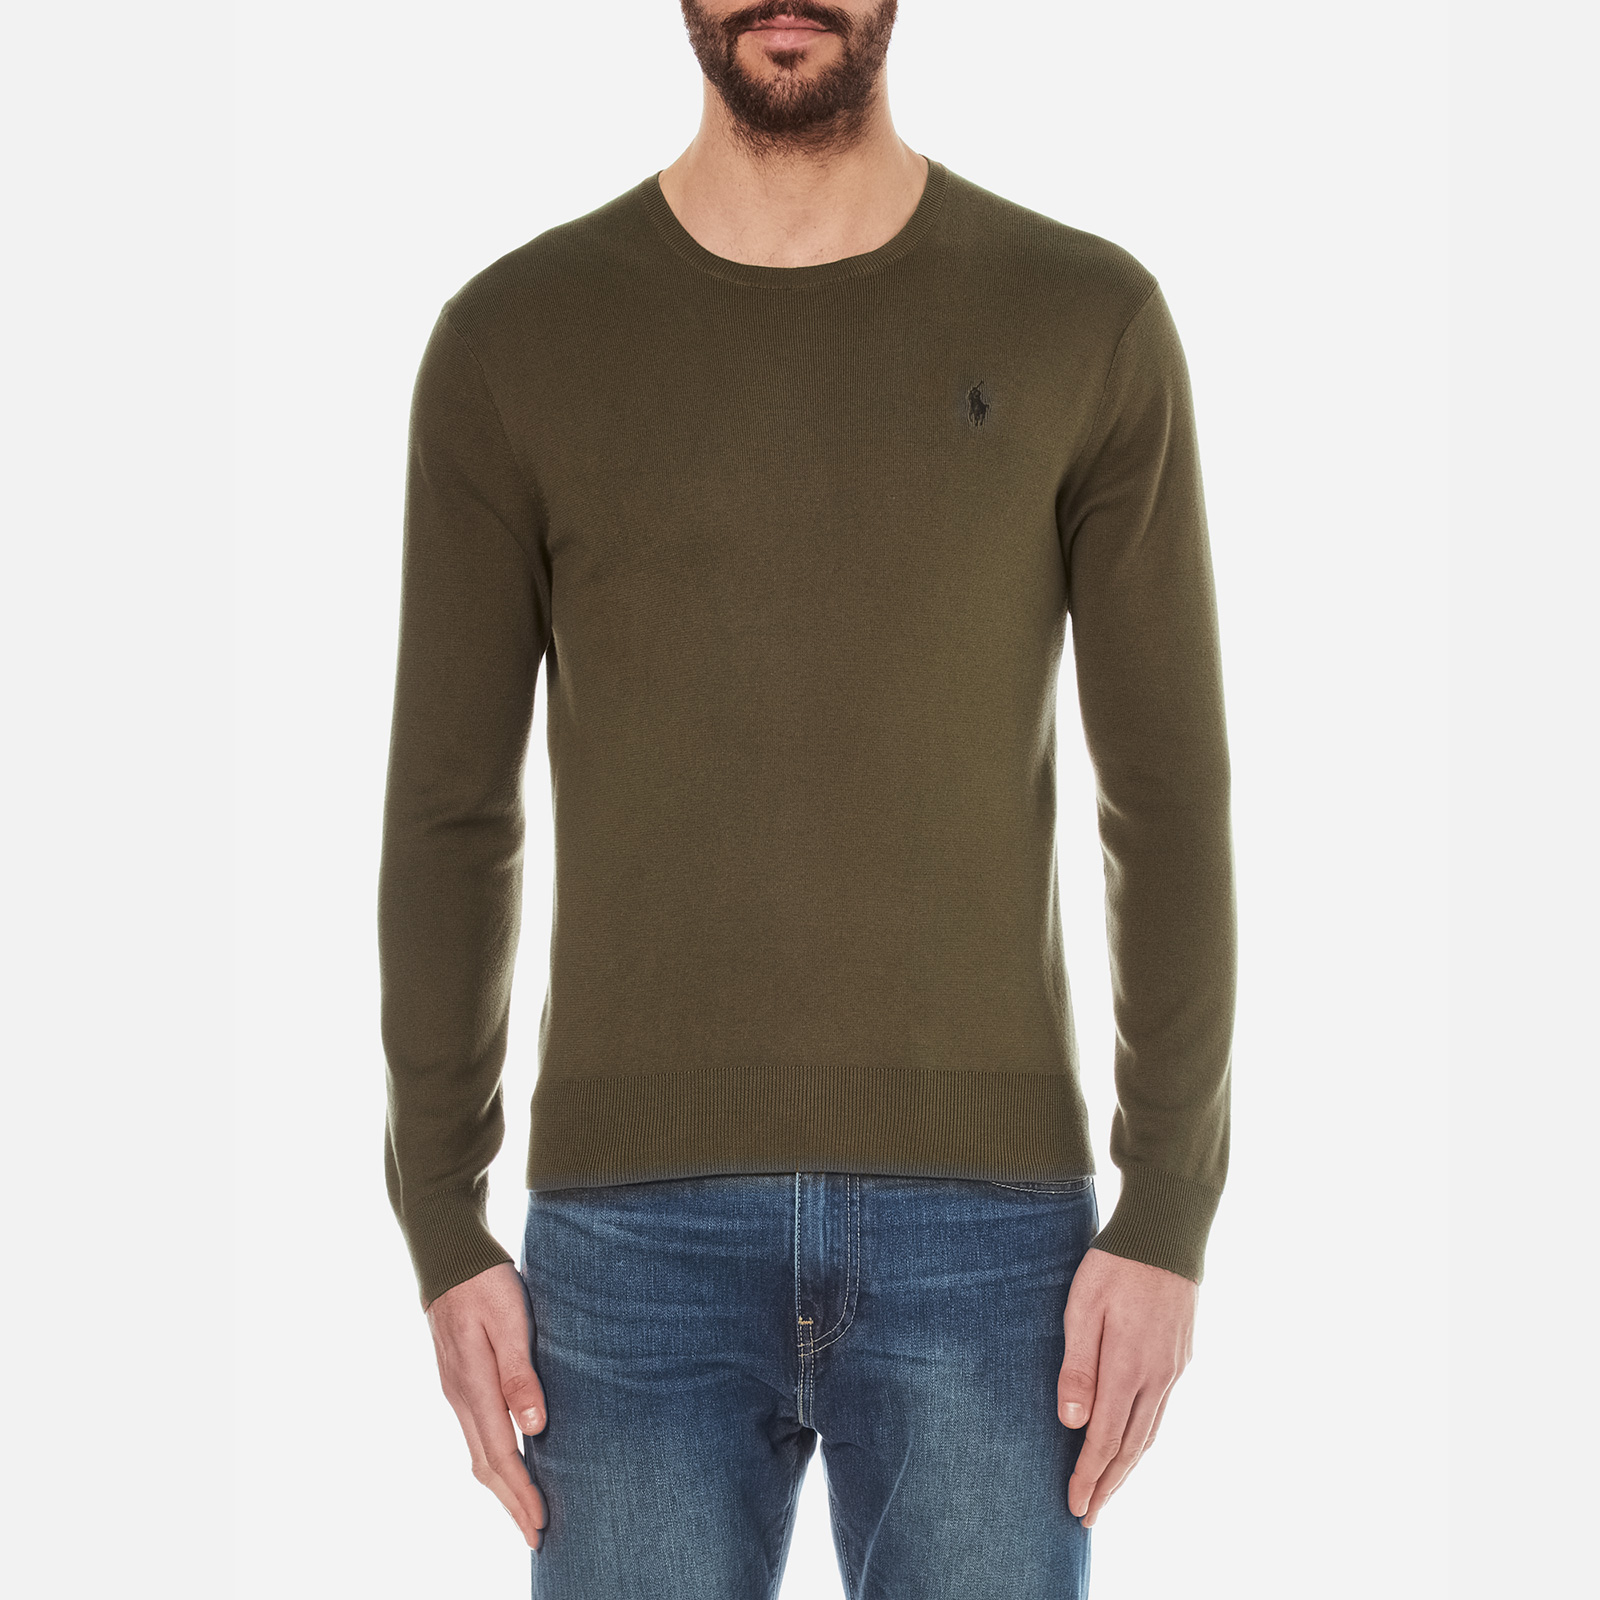 18140466d5618 Polo Ralph Lauren Men s Crew Neck Pima Cotton Knitted Jumper - New Olive -  Free UK Delivery over £50